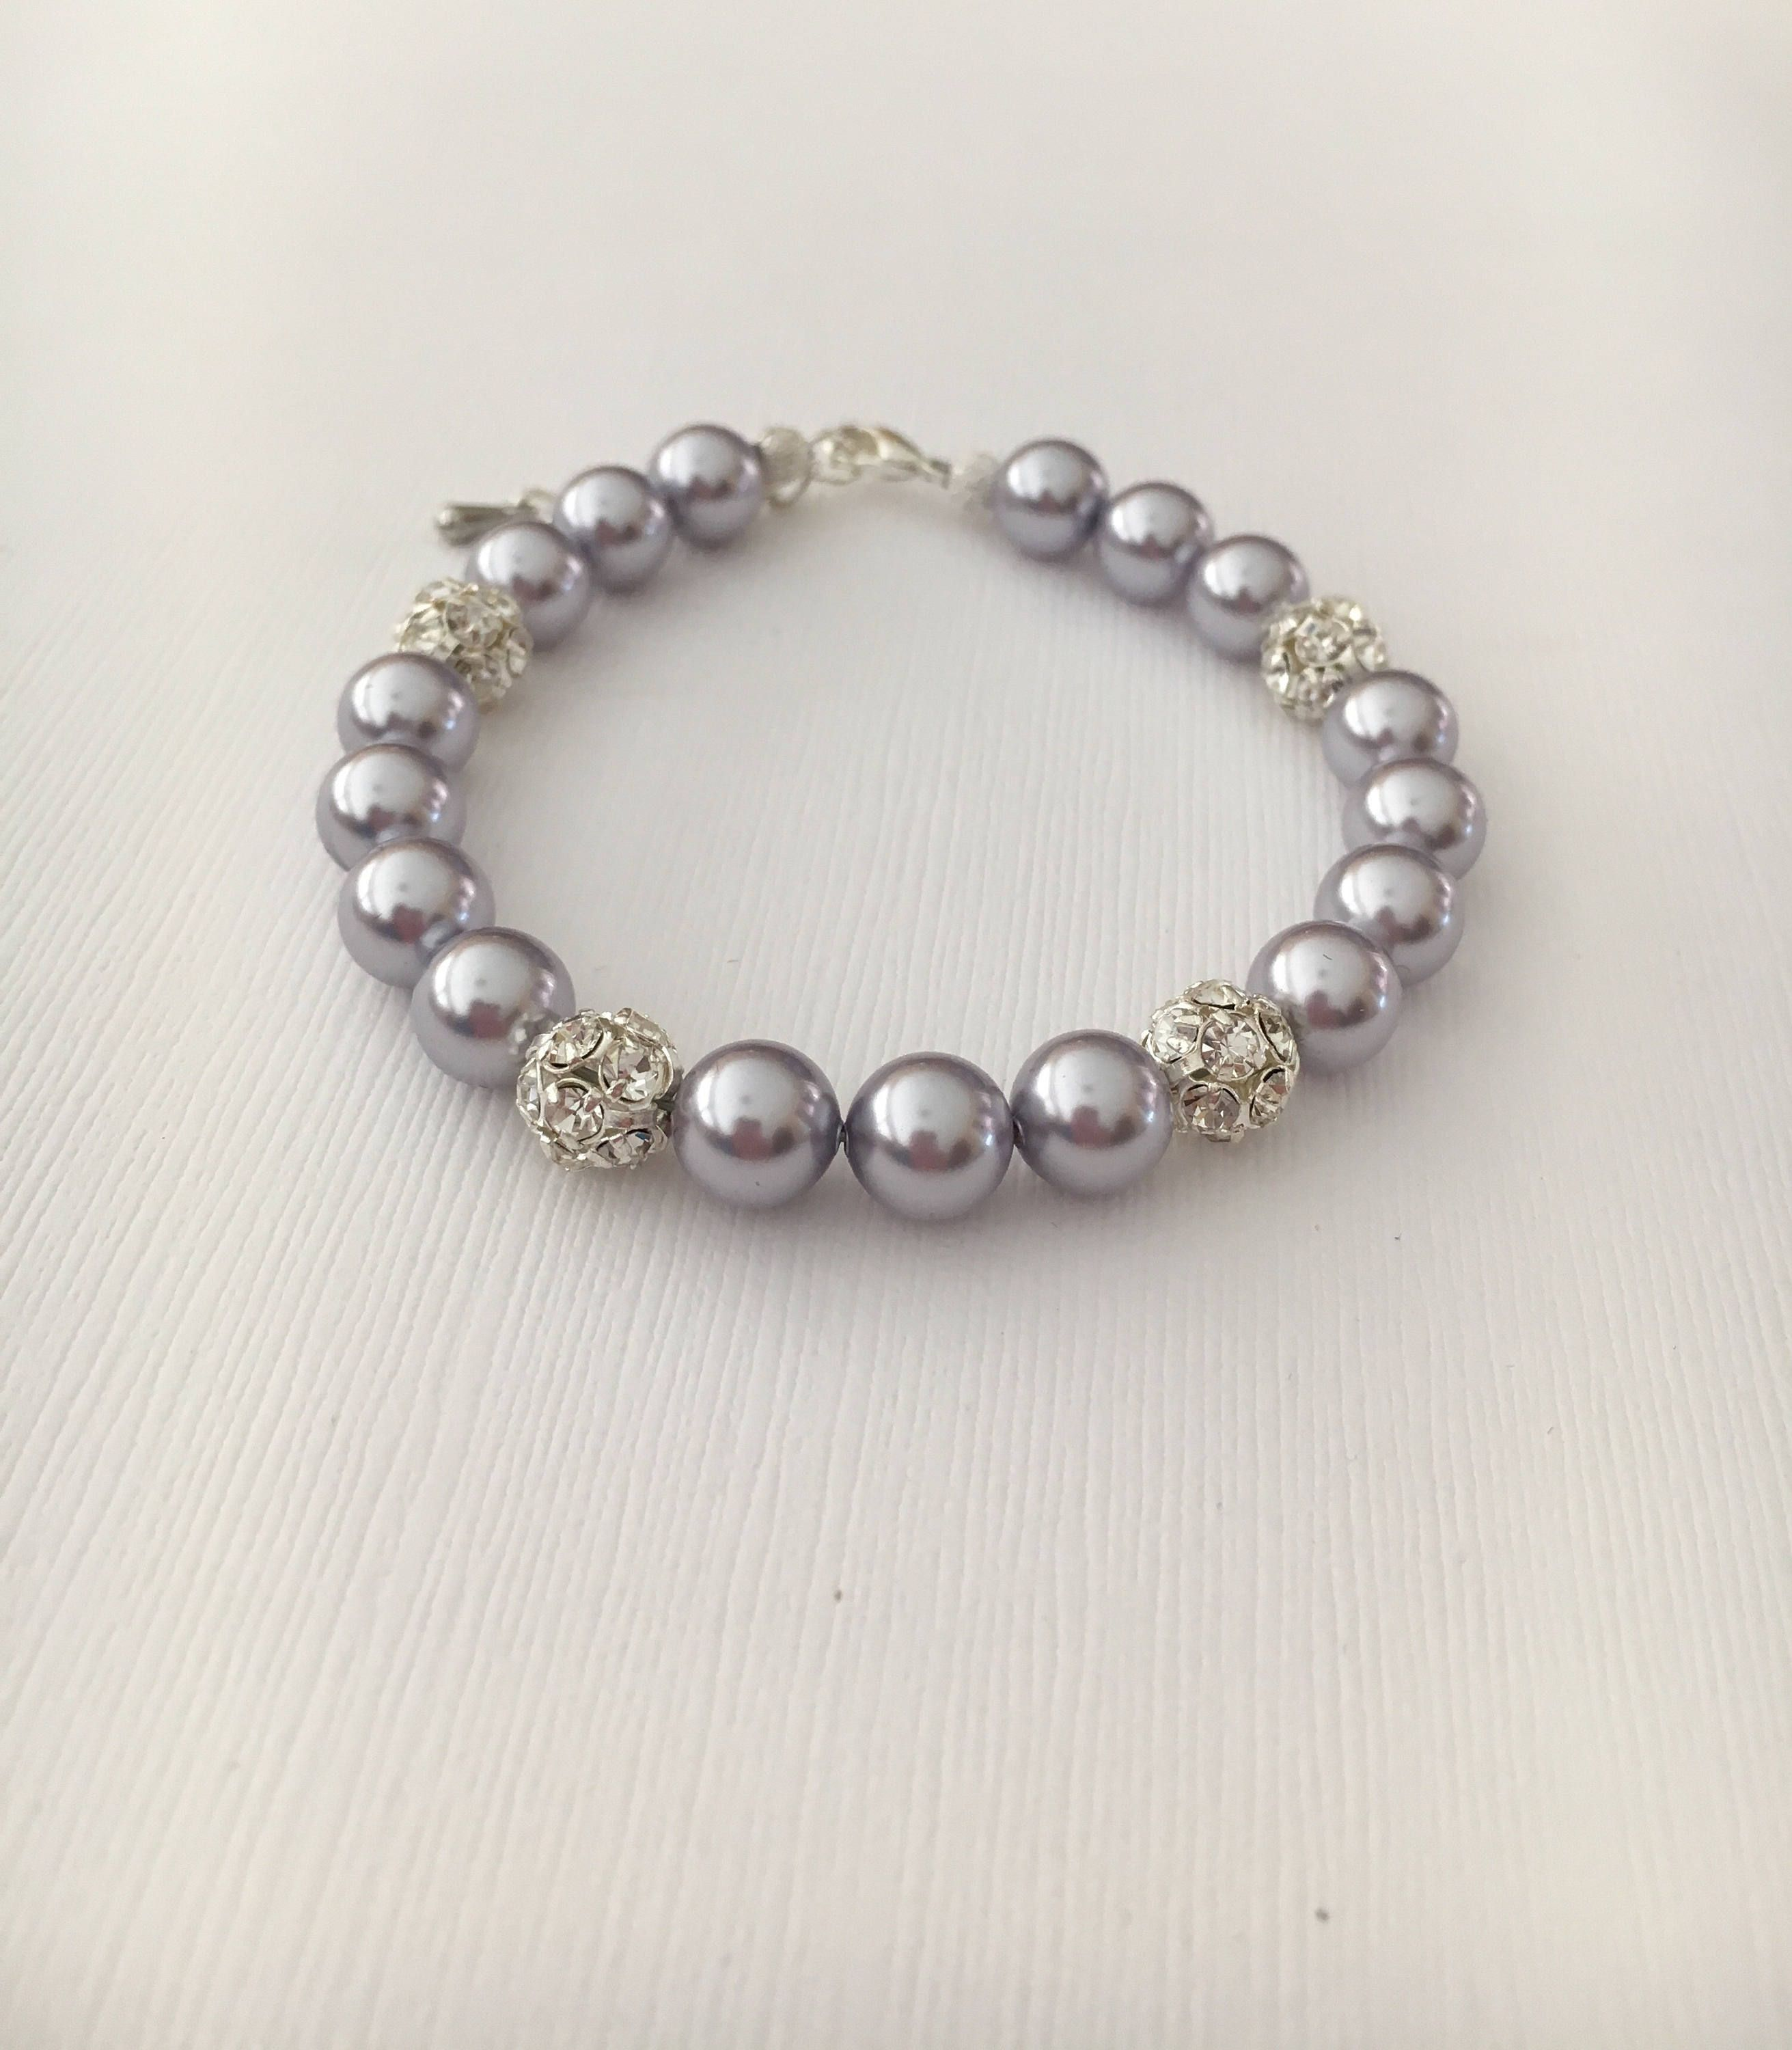 Bridesmaid+Set+Bridesmaid+Gift+Bridesmaid+Bracelet+Mother+Of+the+Bride+Mother+of+the+Groom+Wedding+Swarovski+Pearls